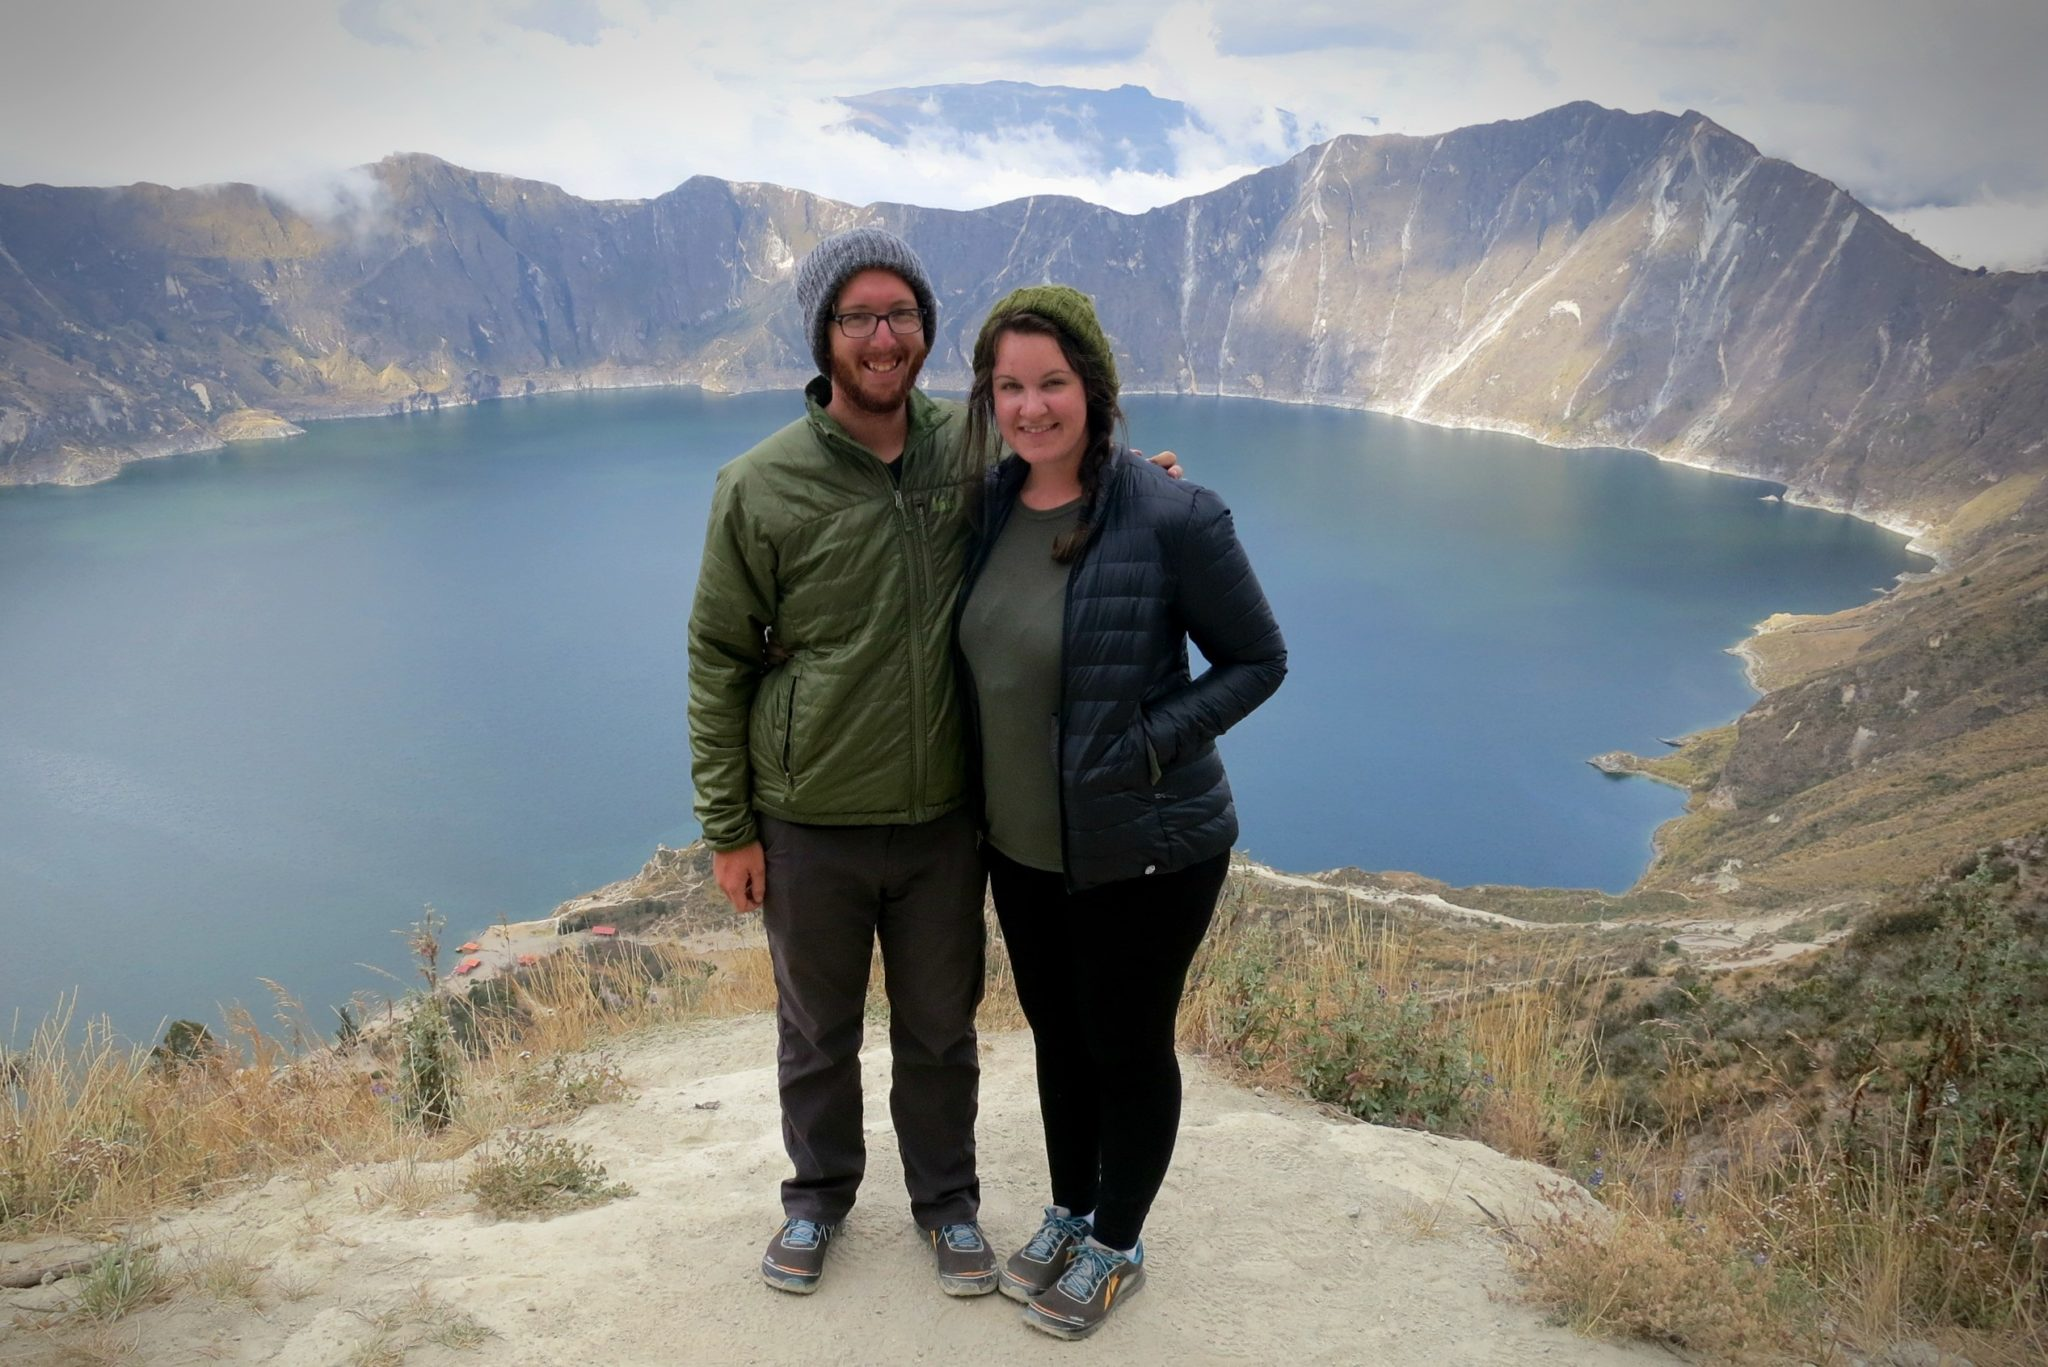 Matching married couple at the Quilotoa Lake in Ecuador.